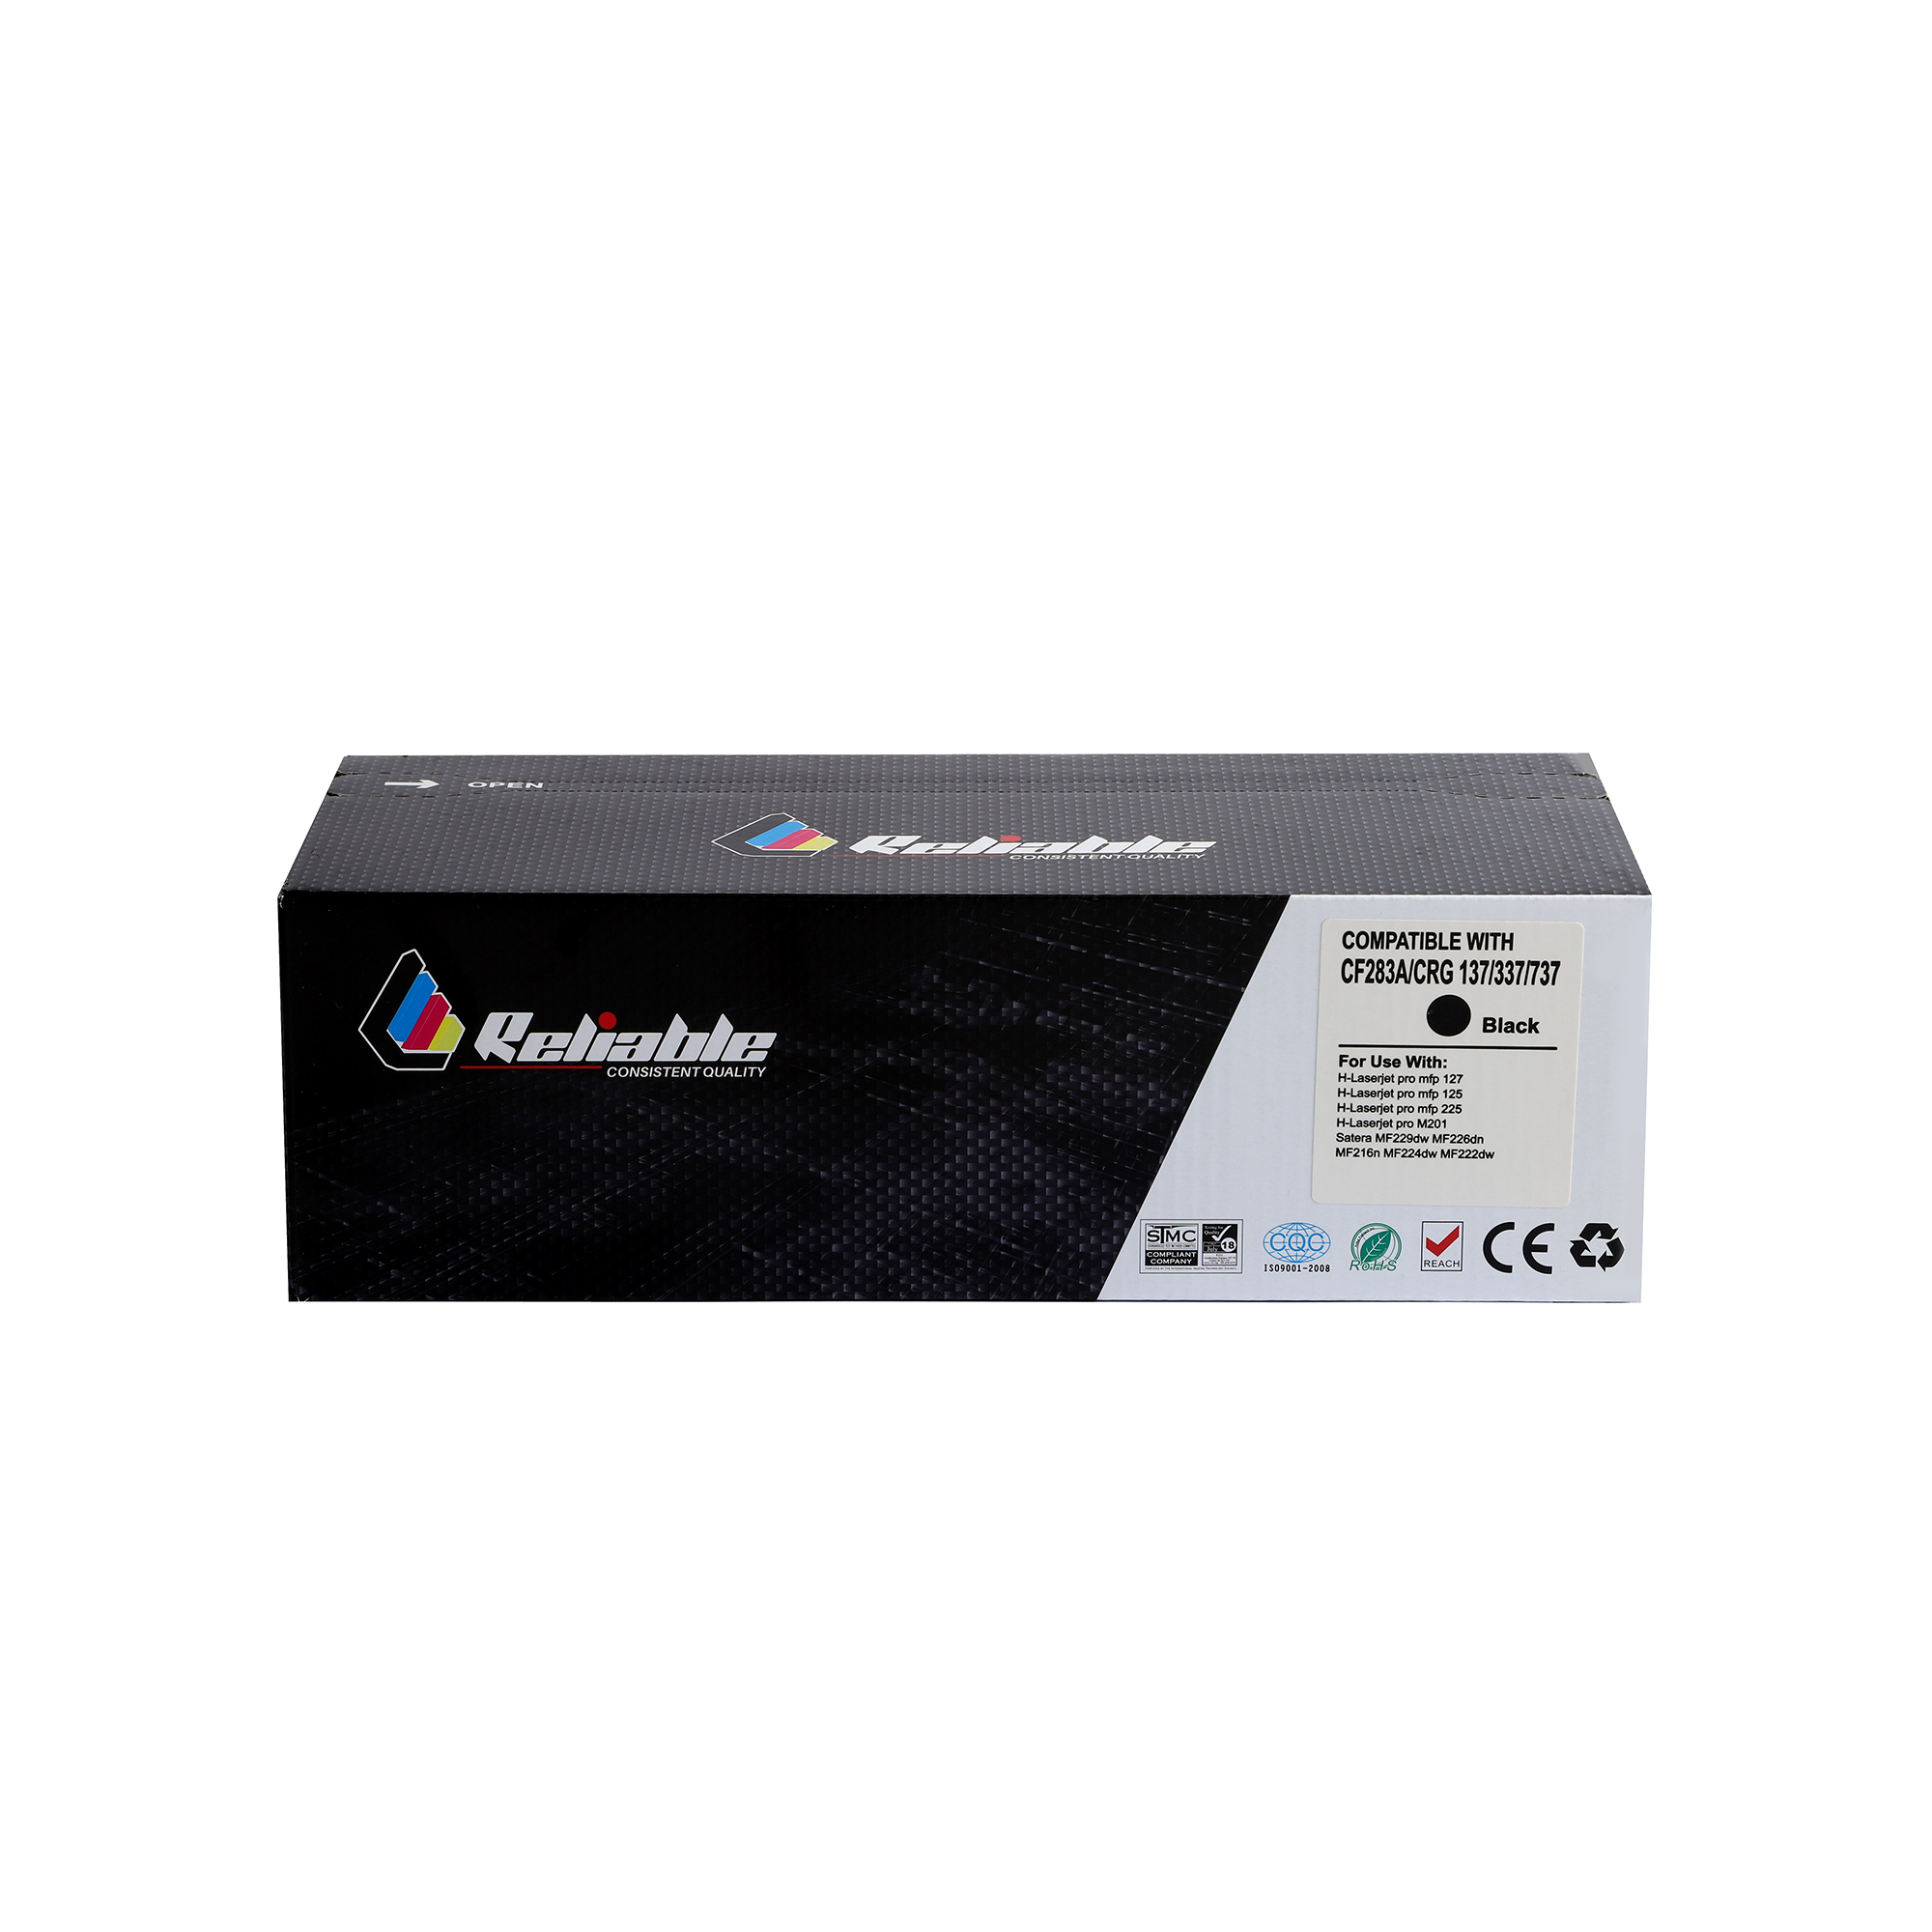 Reliable 83A (CF283A) Compatible Toner Cartridge - Black